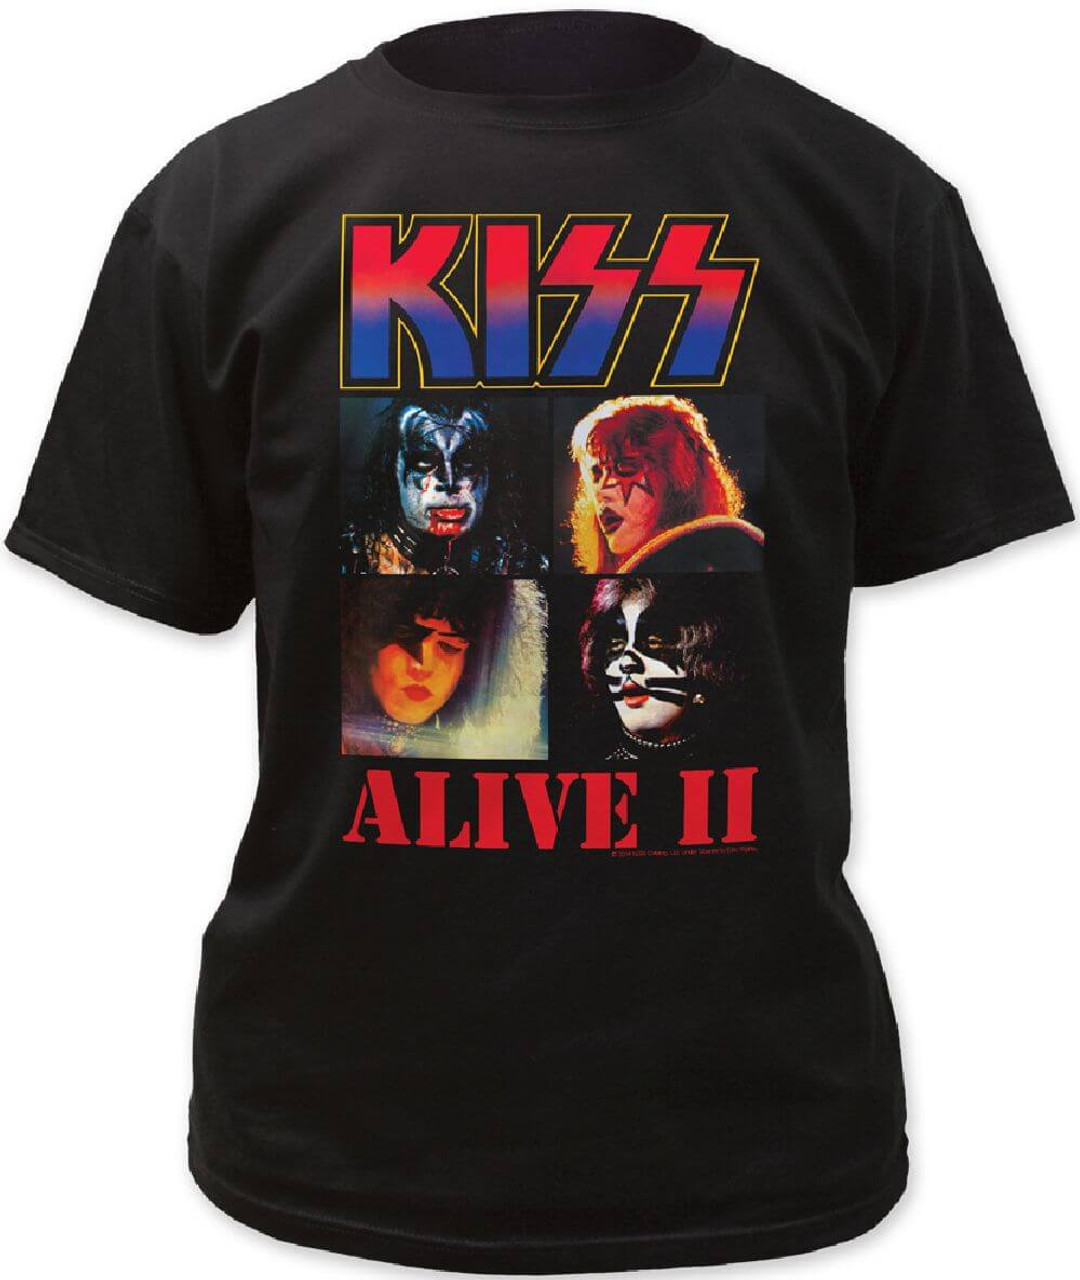 2bb43566a Kiss Alive II Album Cover Artwork Men's T-shirt | Rocker Rags